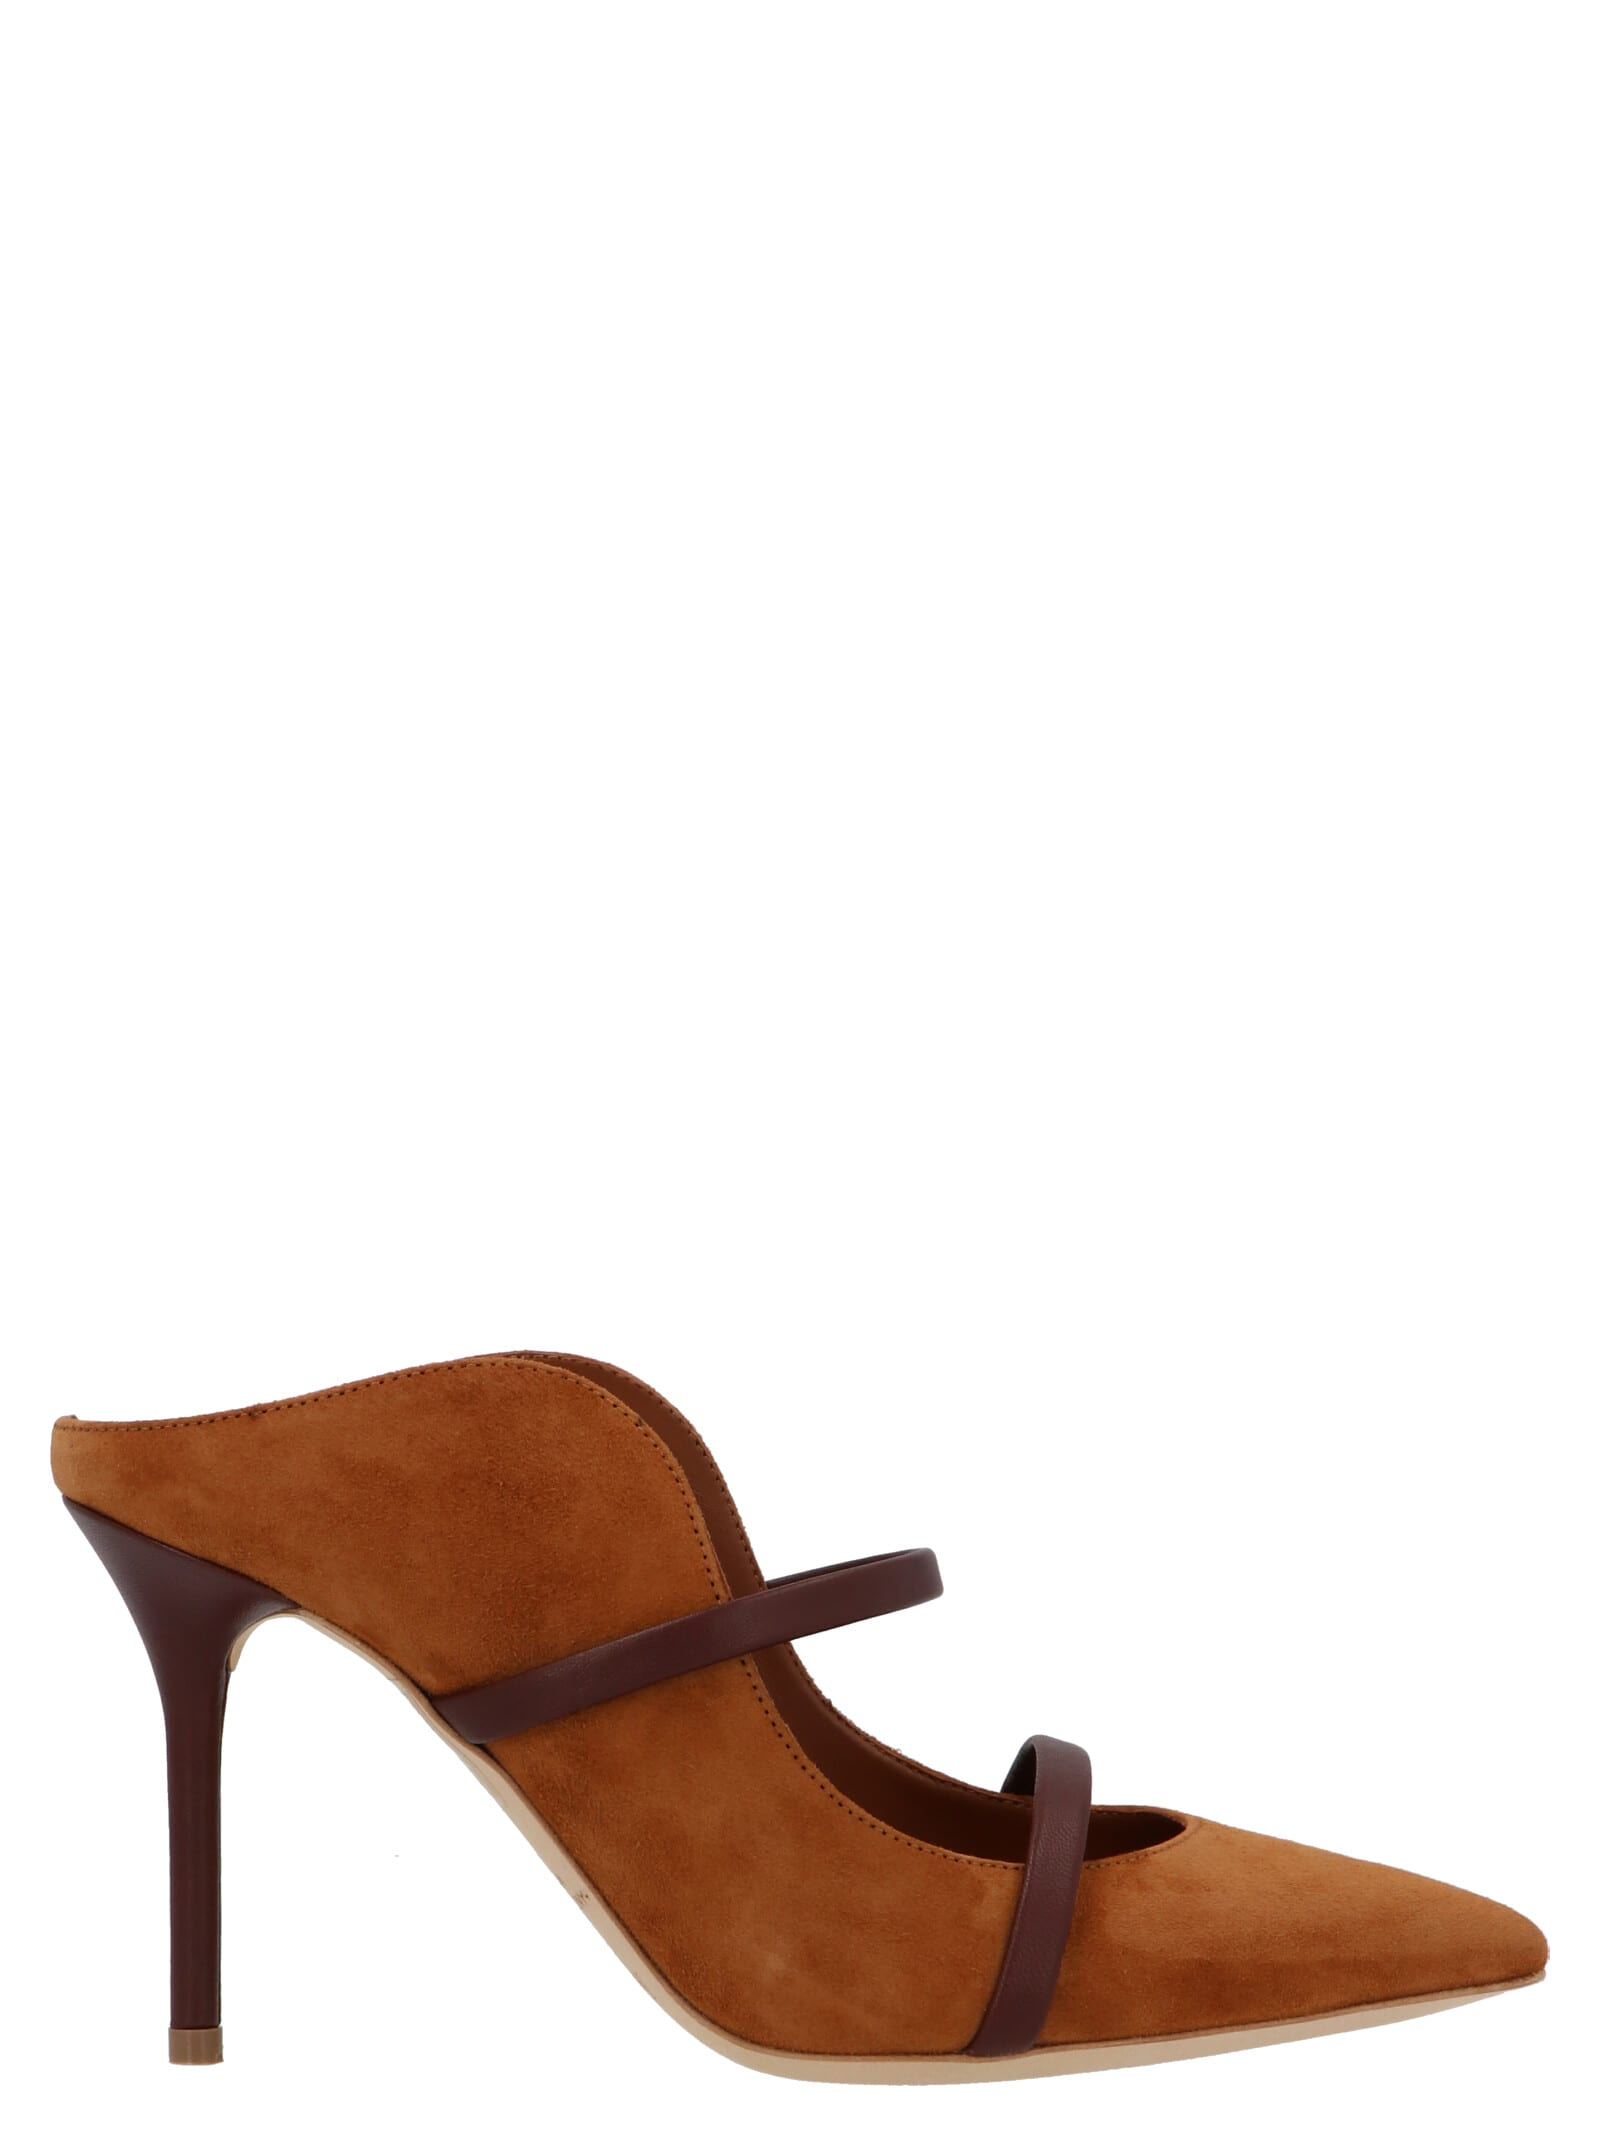 MALONE SOULIERS MAUREEN SHOES